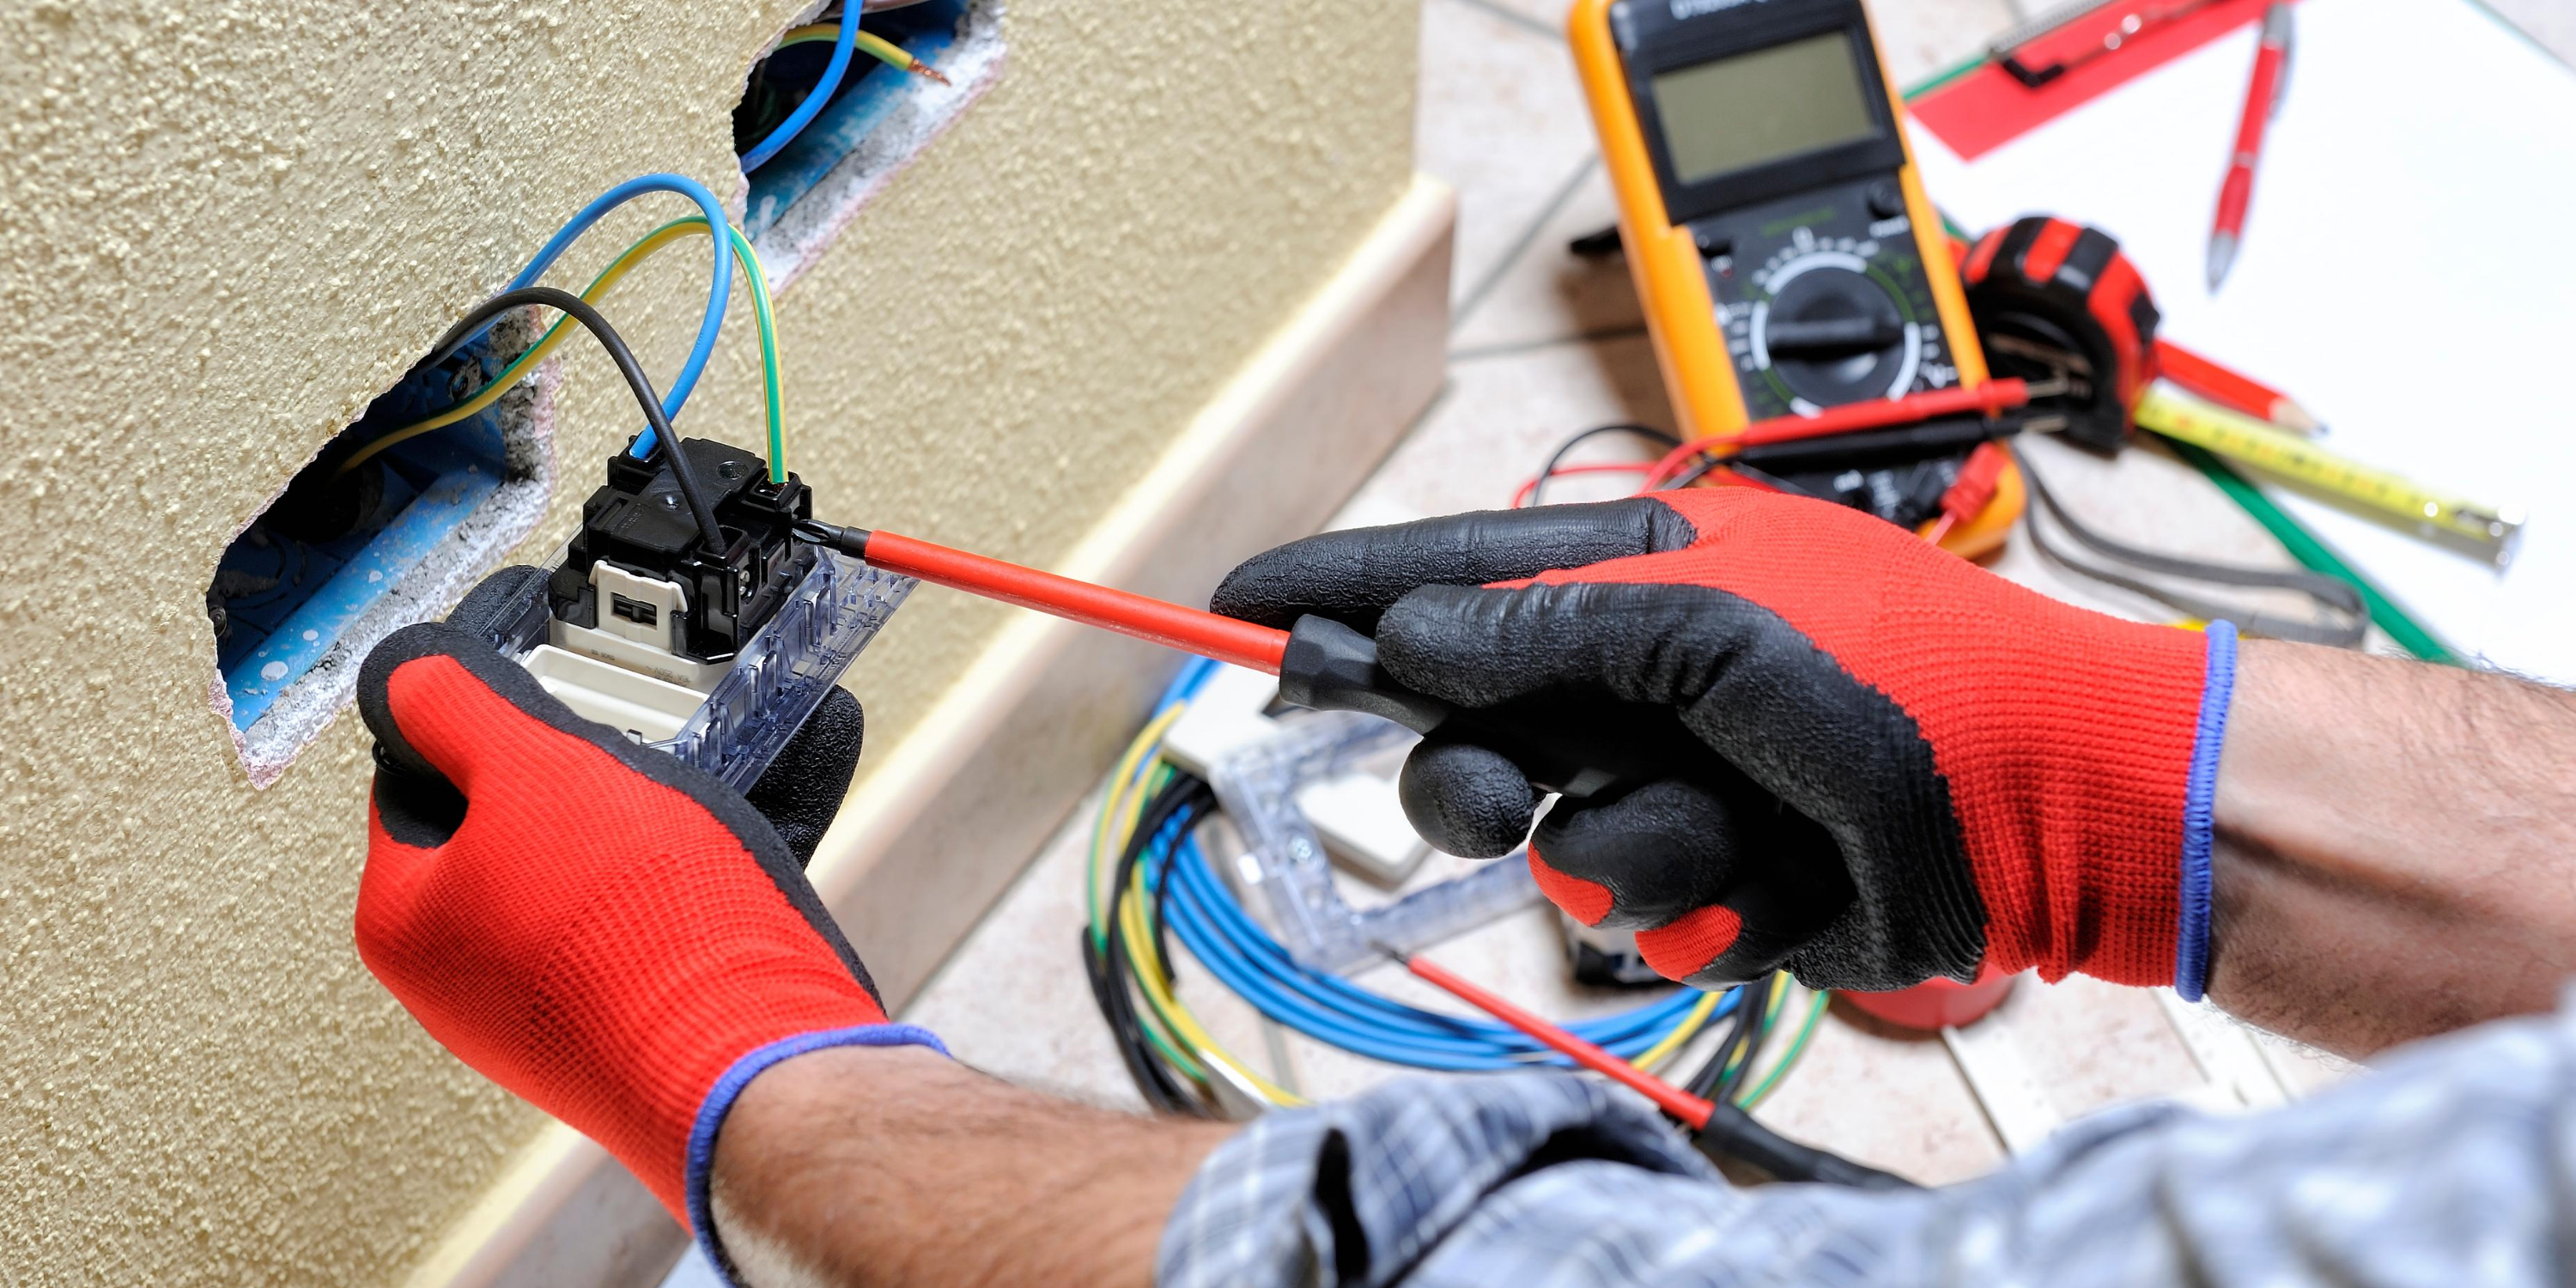 Speck Family Electric changing the wires to an outlet is when you should hire an electrician.